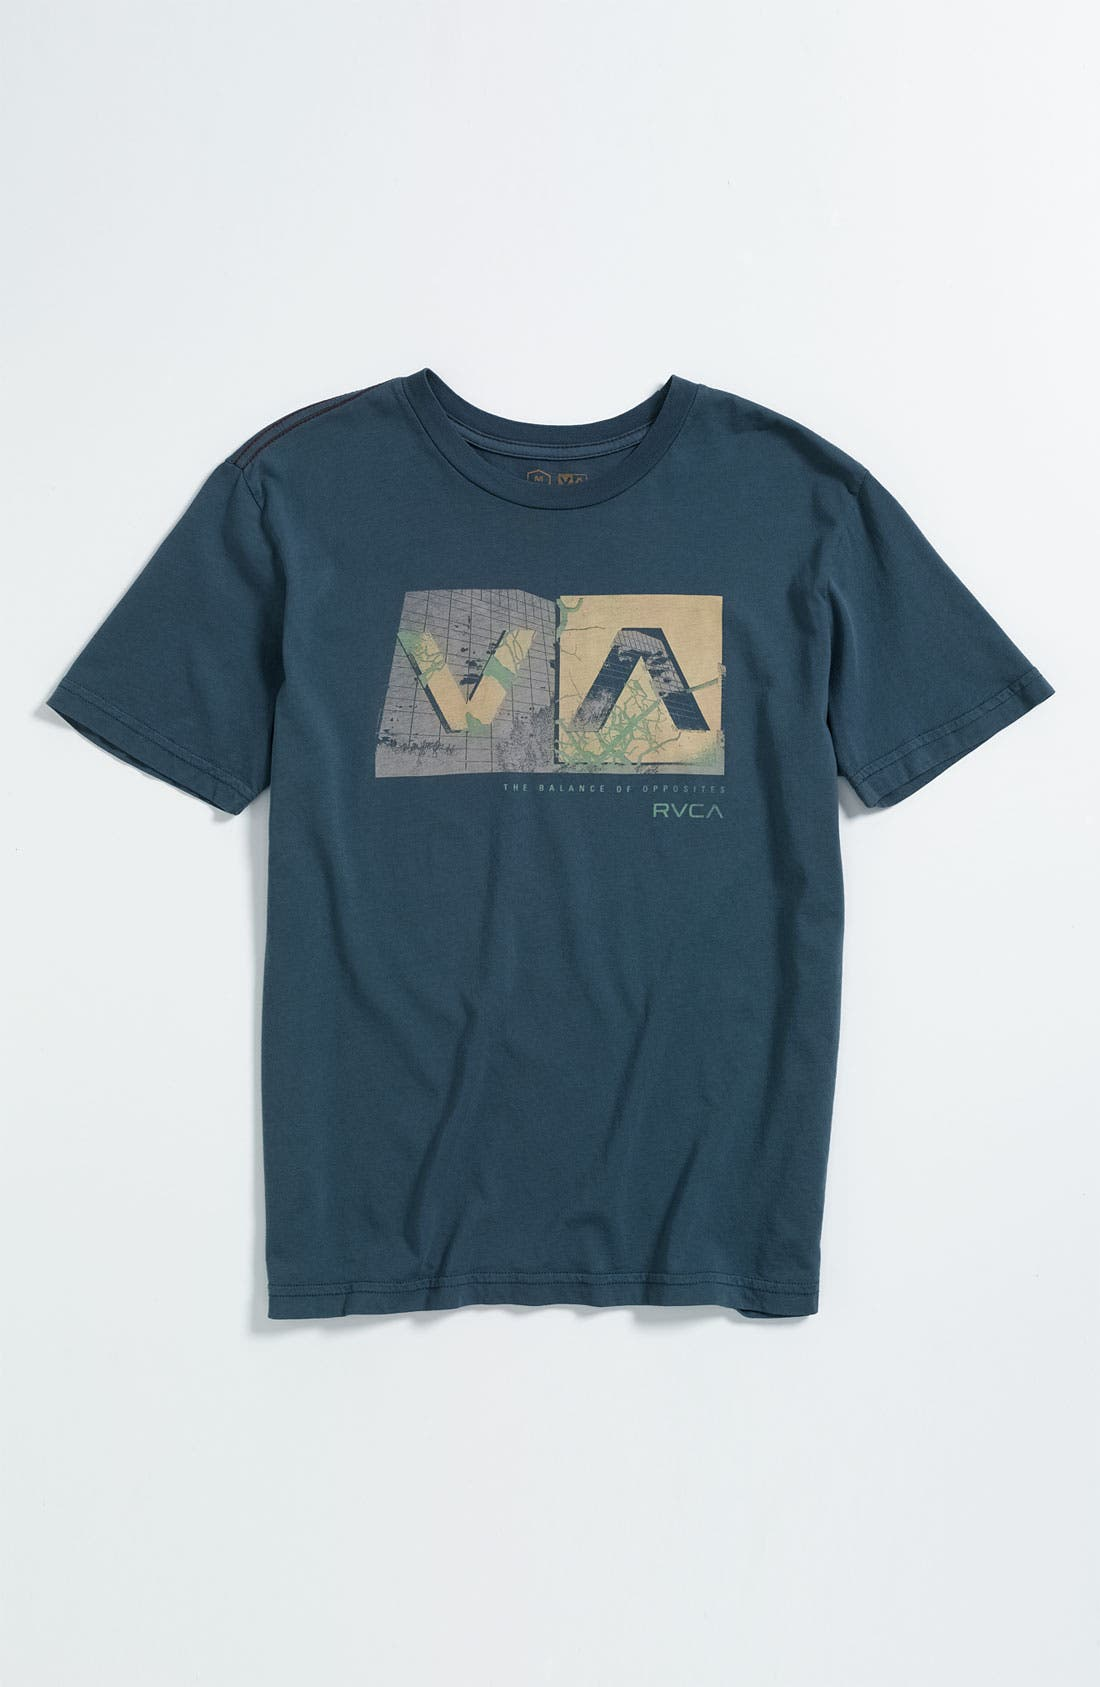 Main Image - RVCA 'Branch Box' T-Shirt (Big Boys)